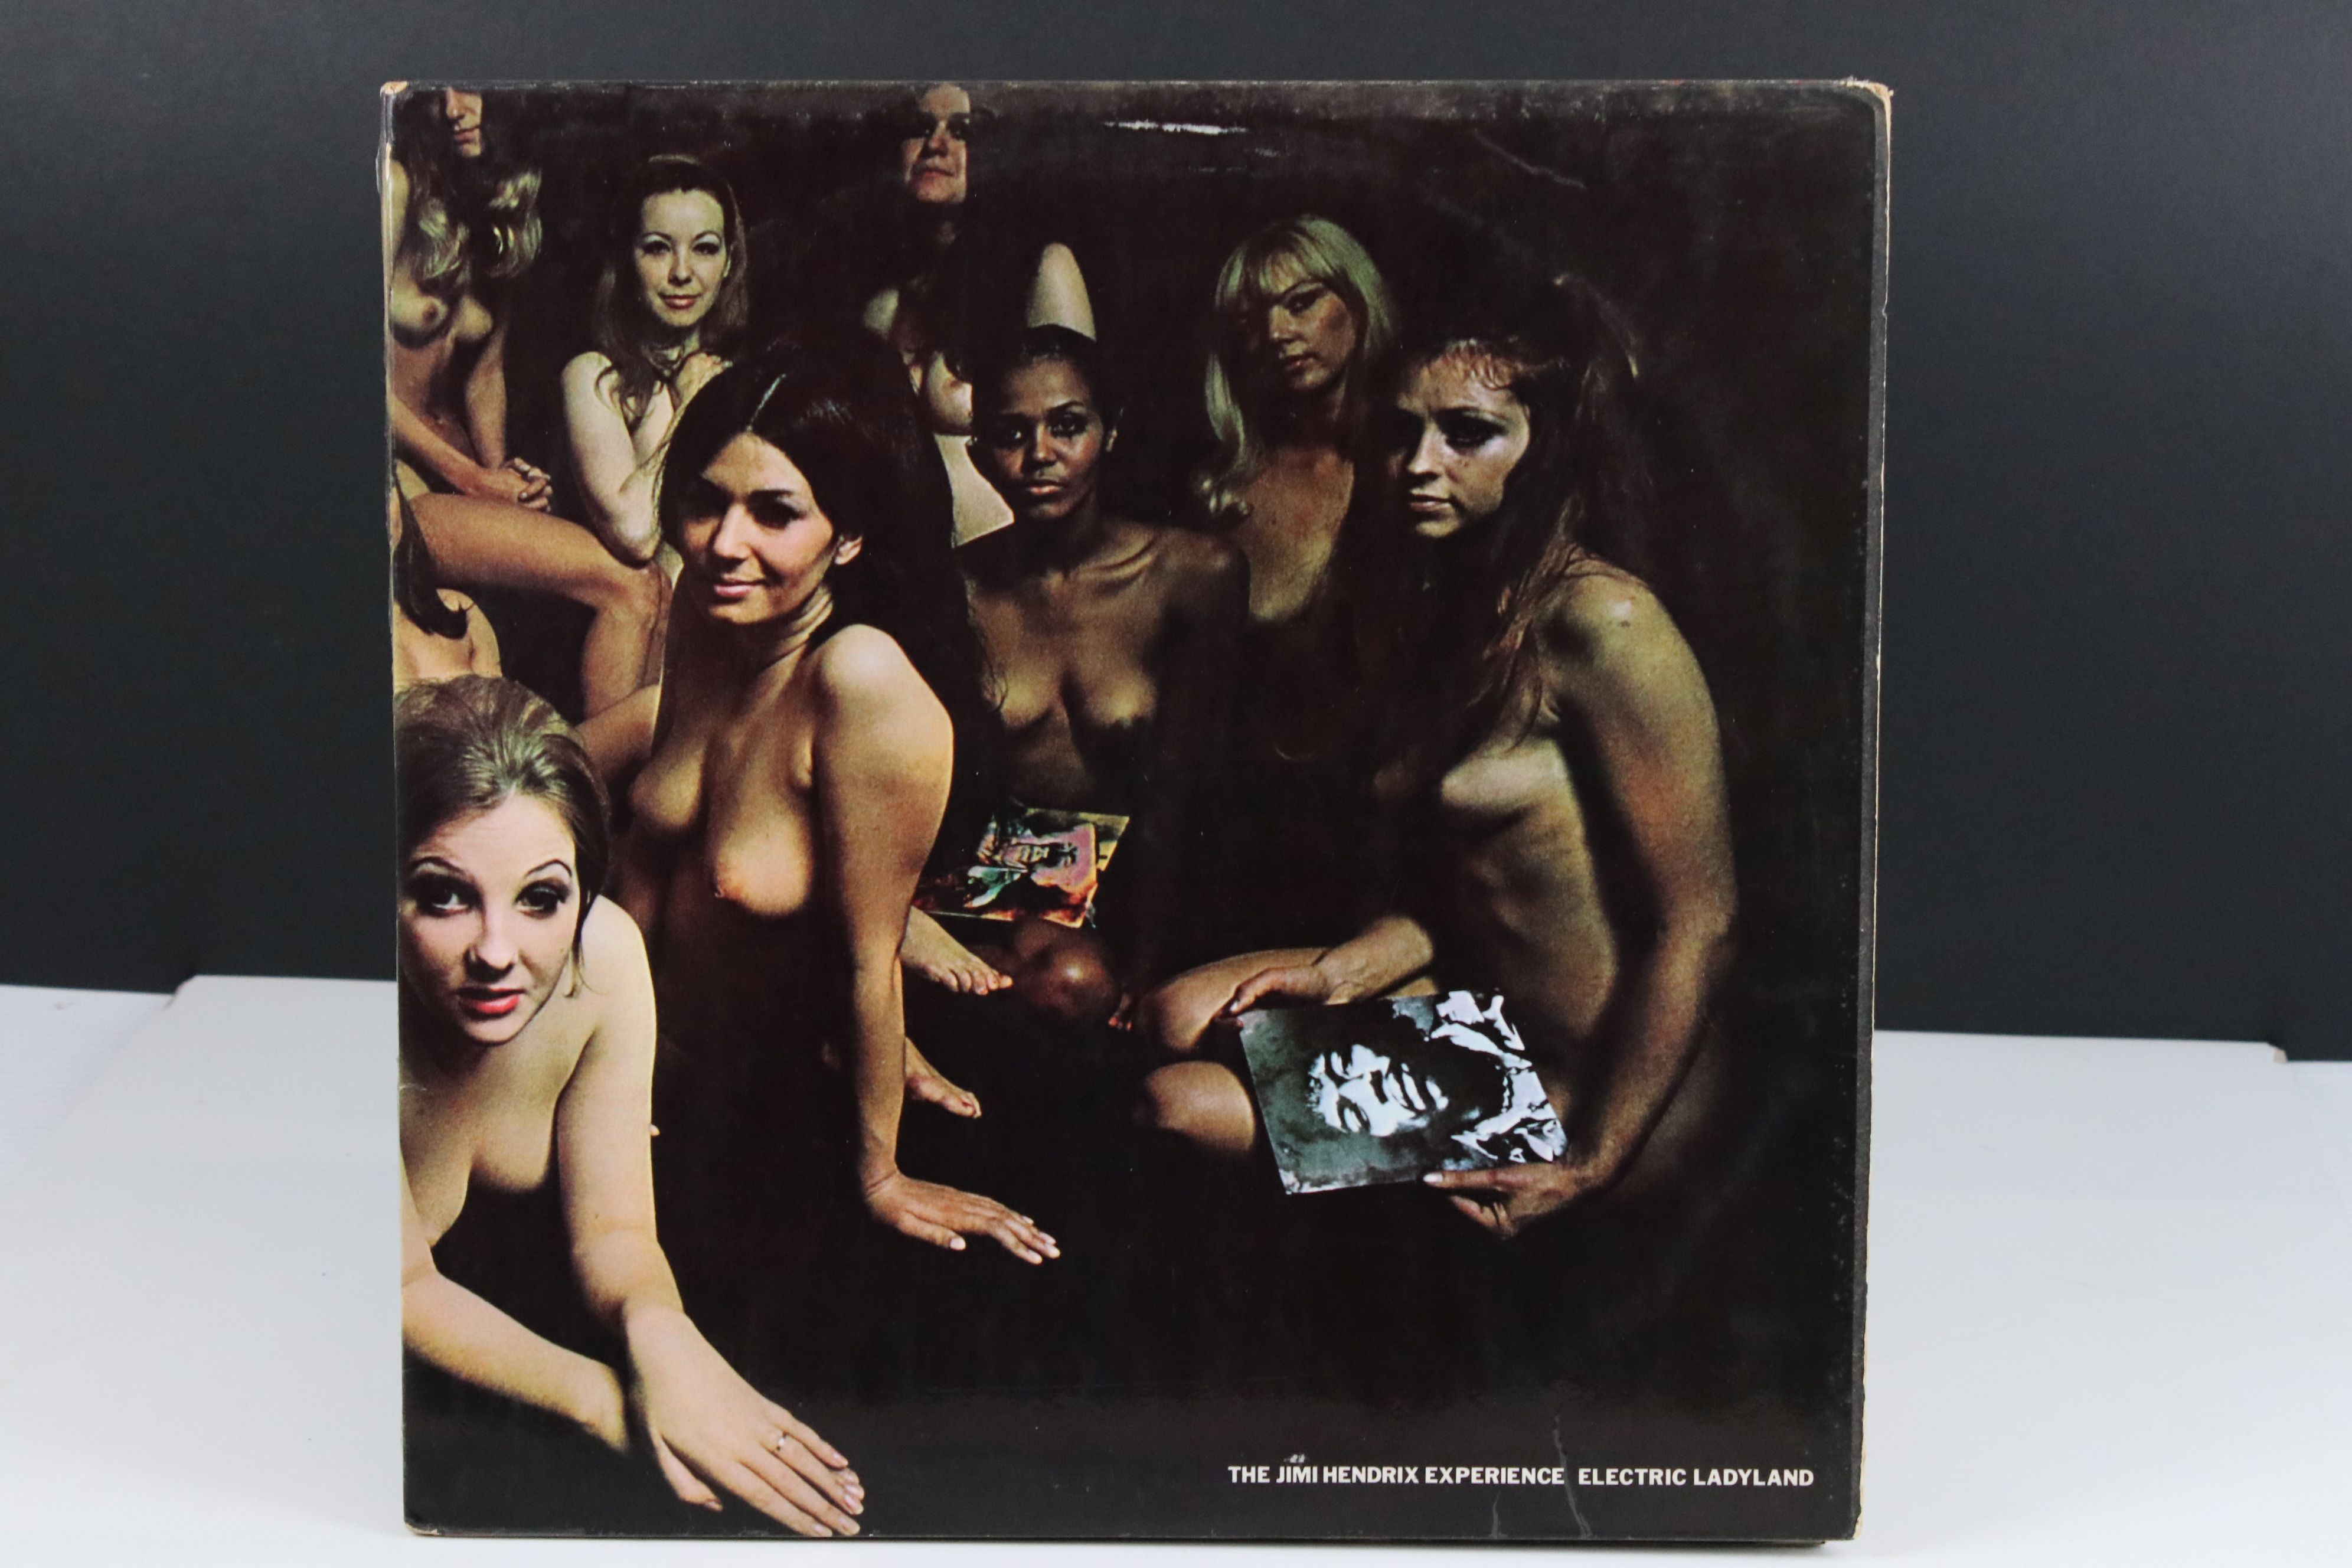 Vinyl - Jimi Hendrix Electric Ladyland on Track 61300819 blue text, Jimi to the right when